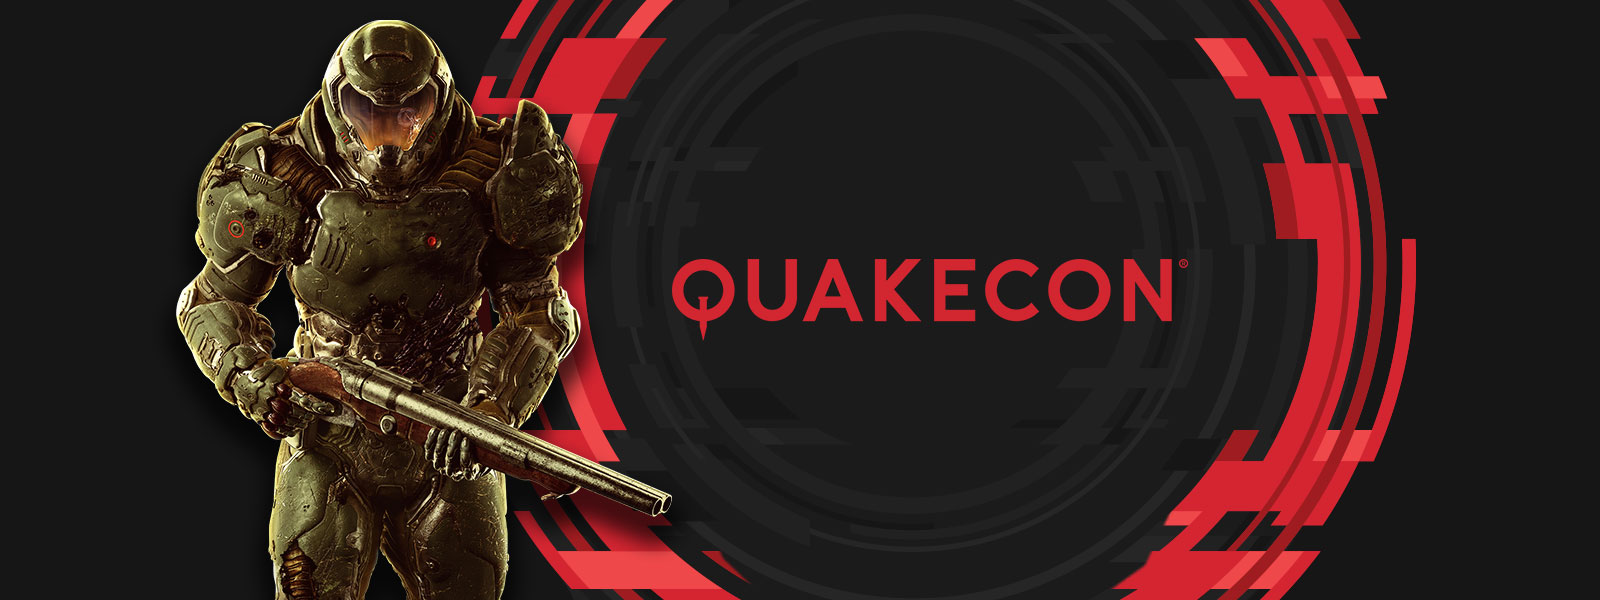 A red Quakecon logo next to a Slayer character from the Xbox One game DOOM.